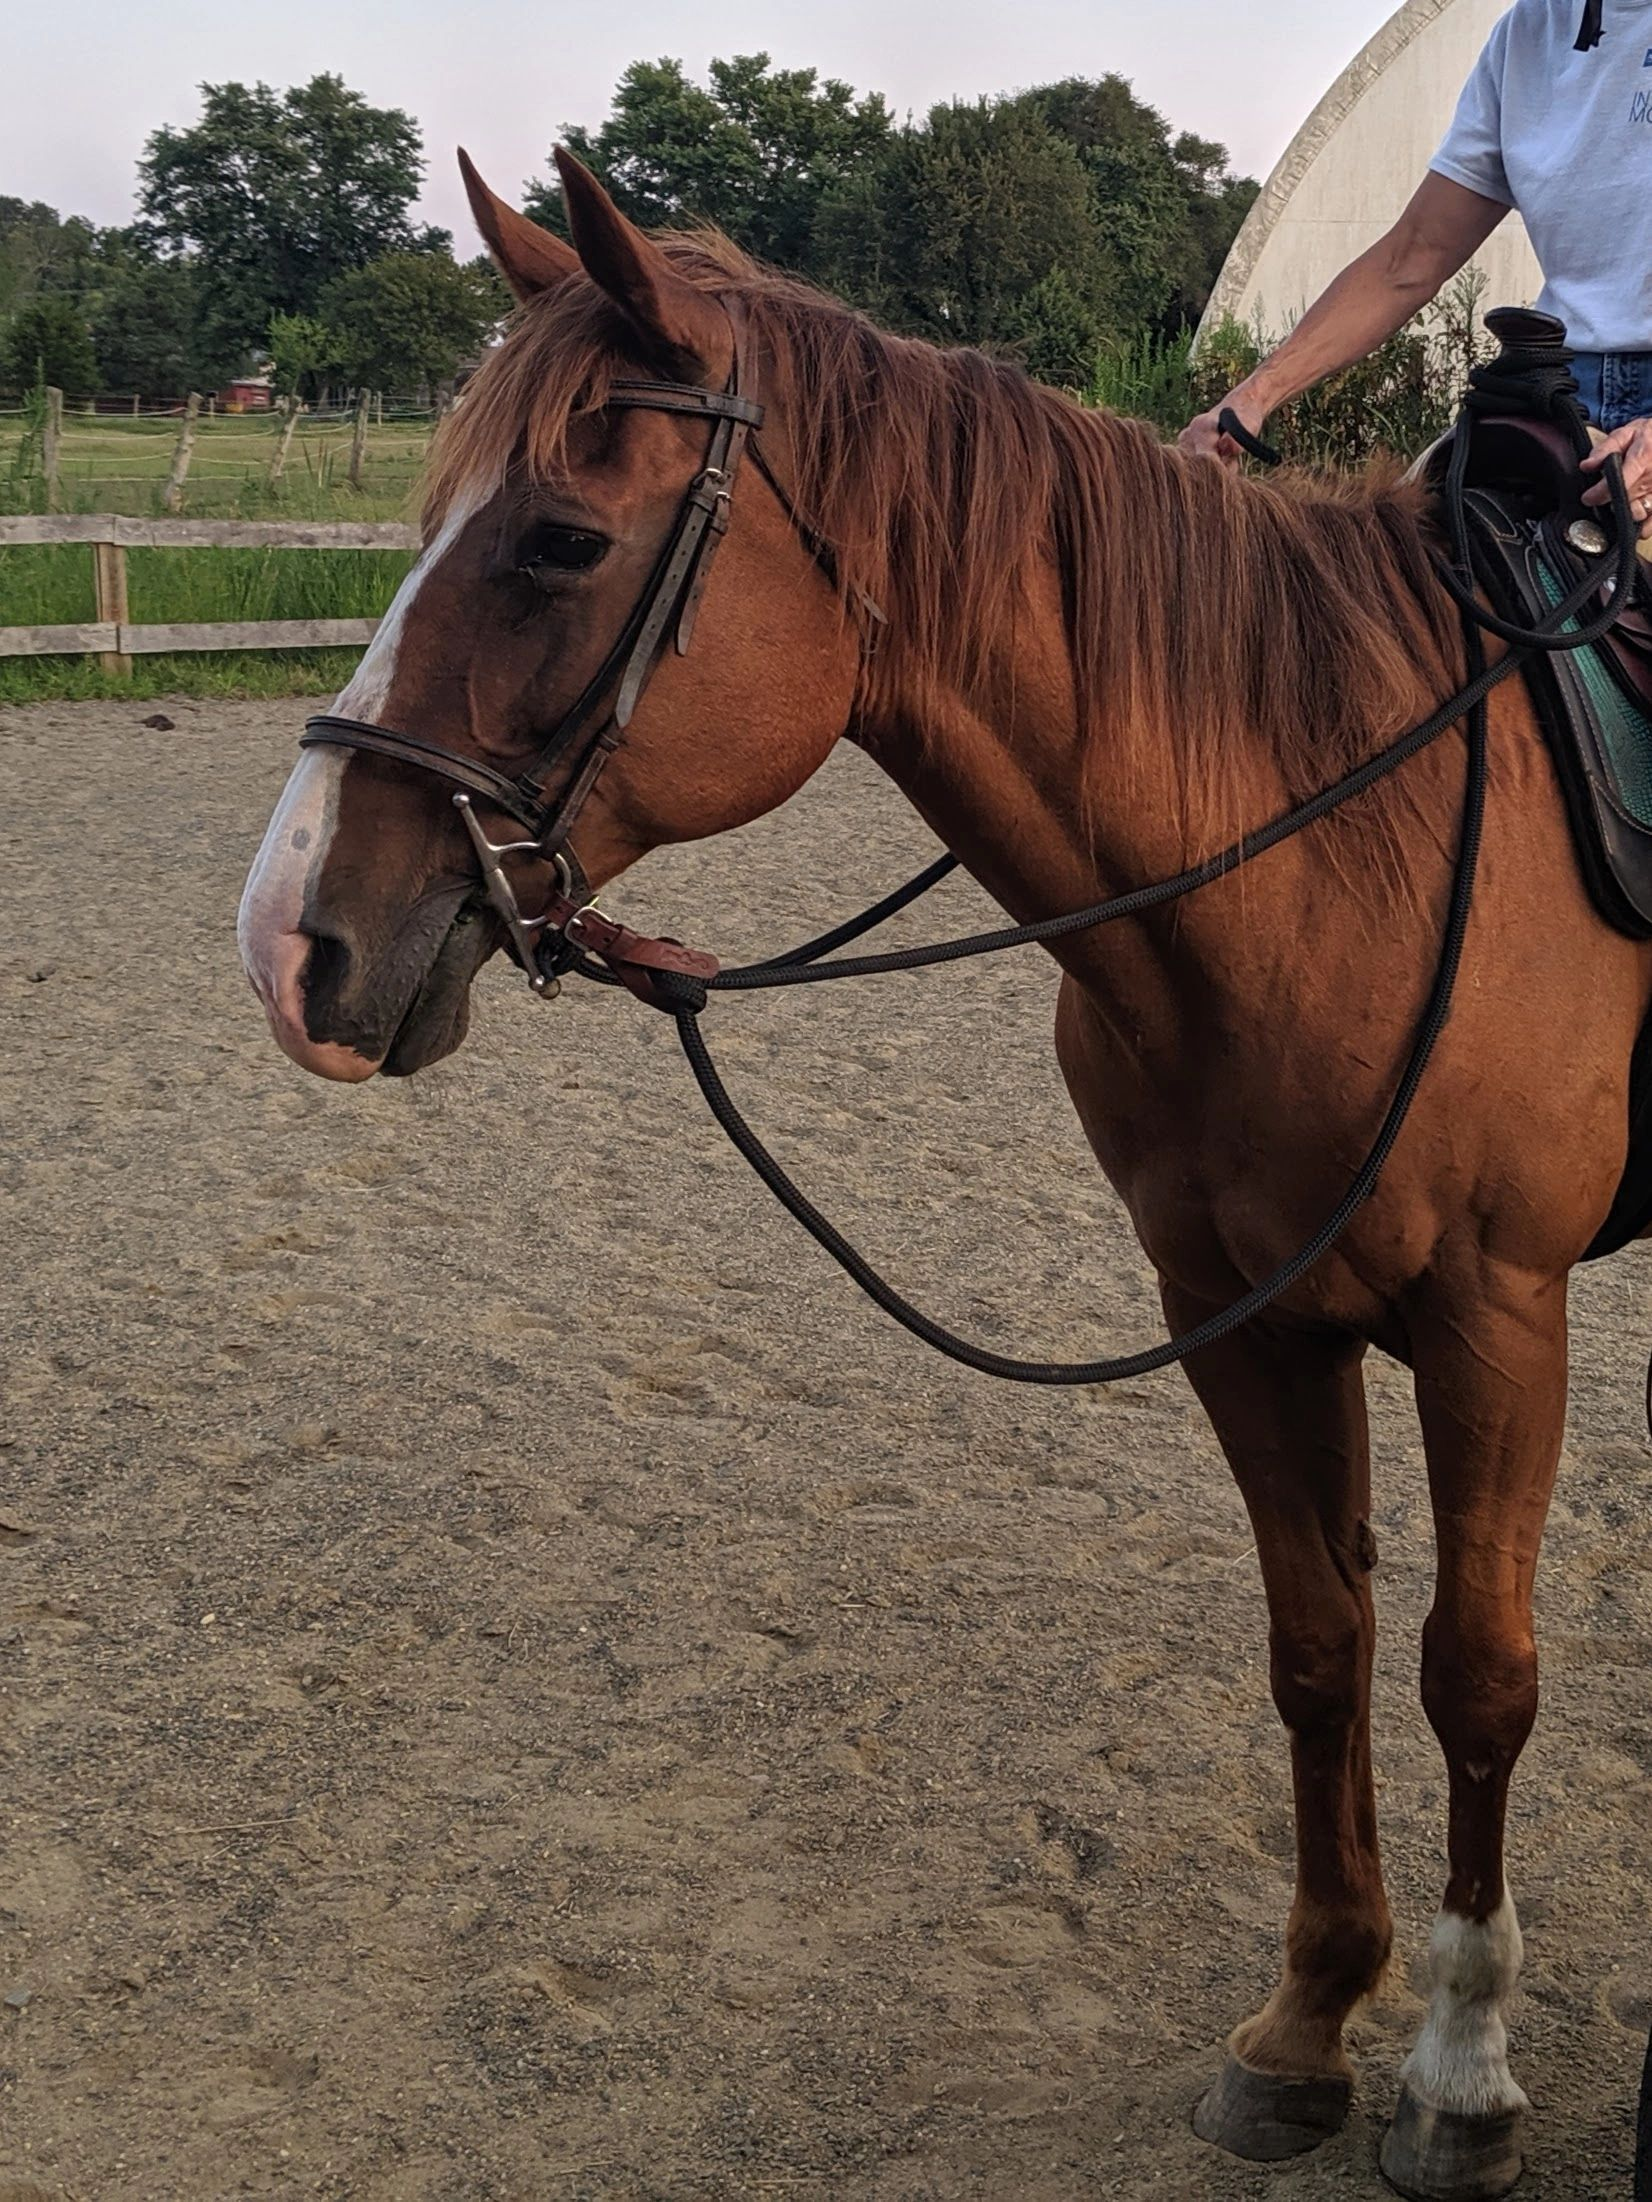 chestnut mare with white blaze with rider in arena